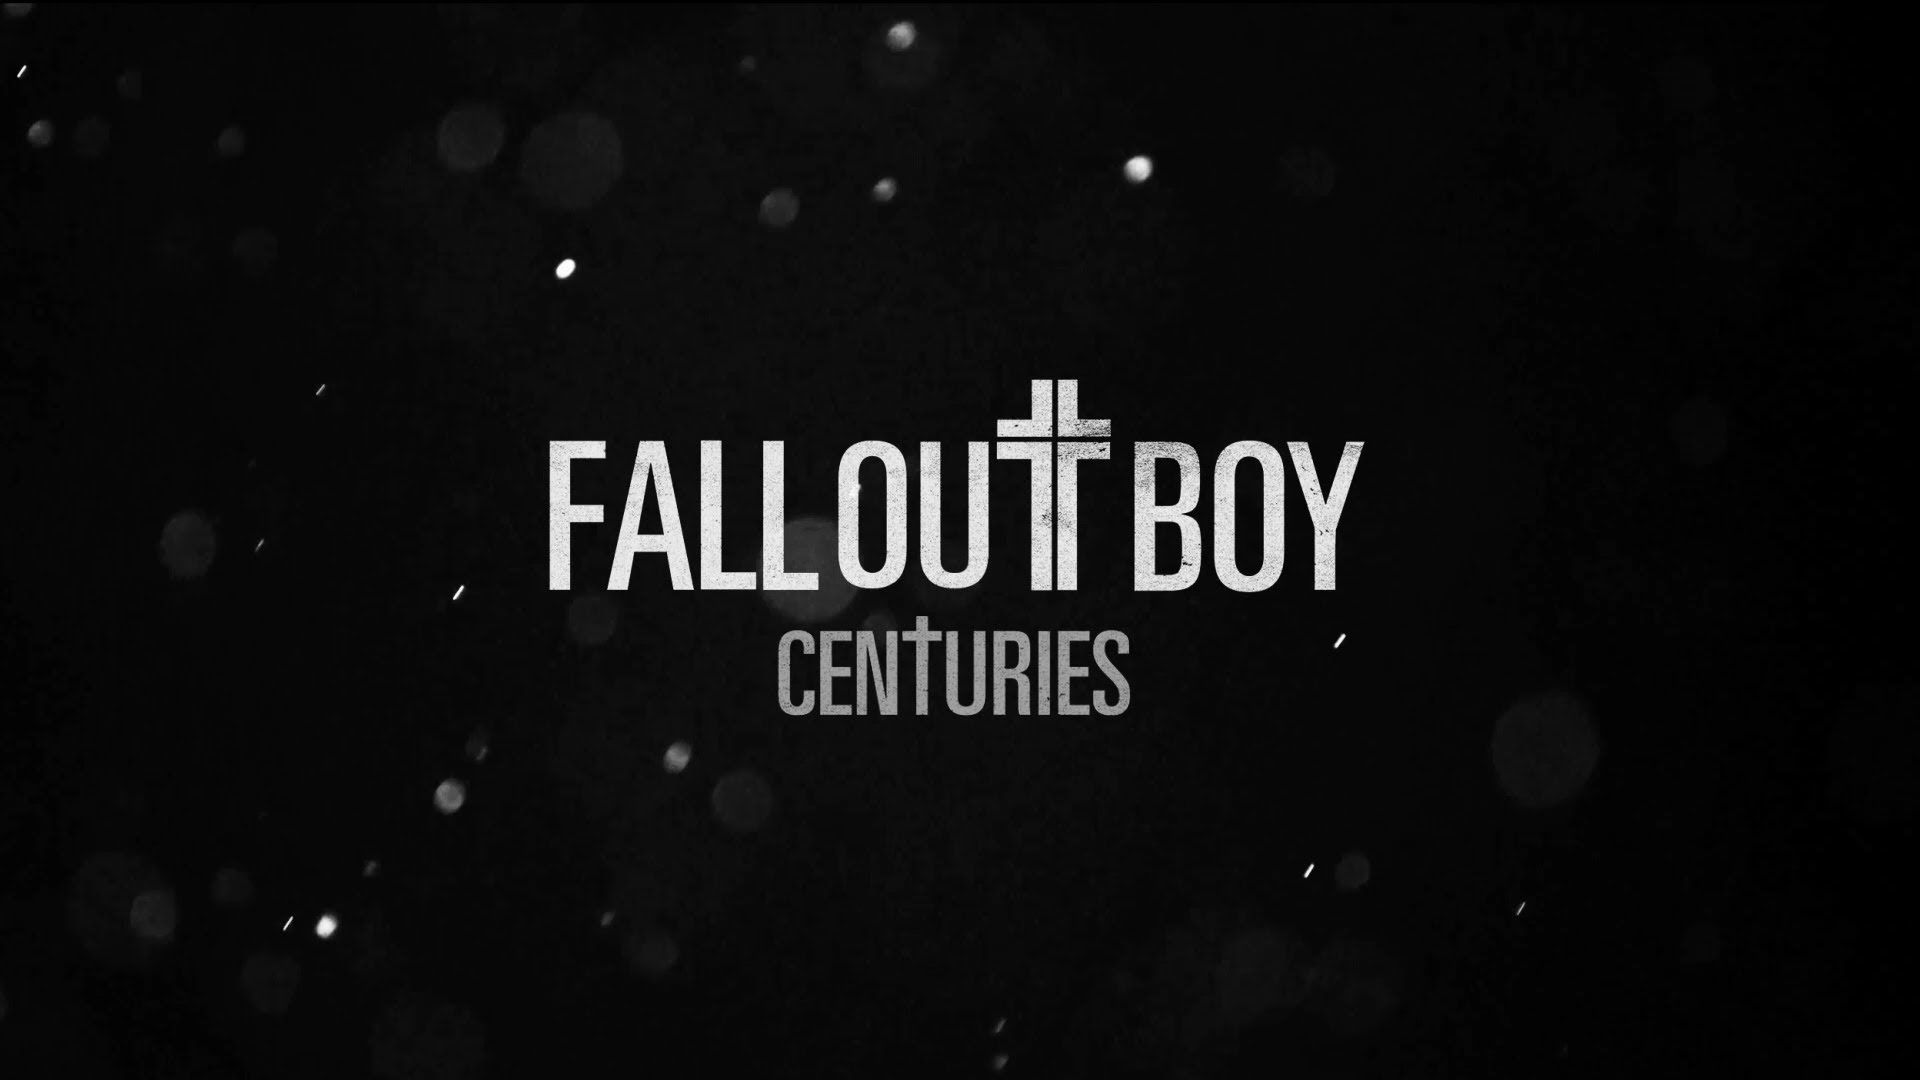 This is called Centuries by Fall Out Boy.